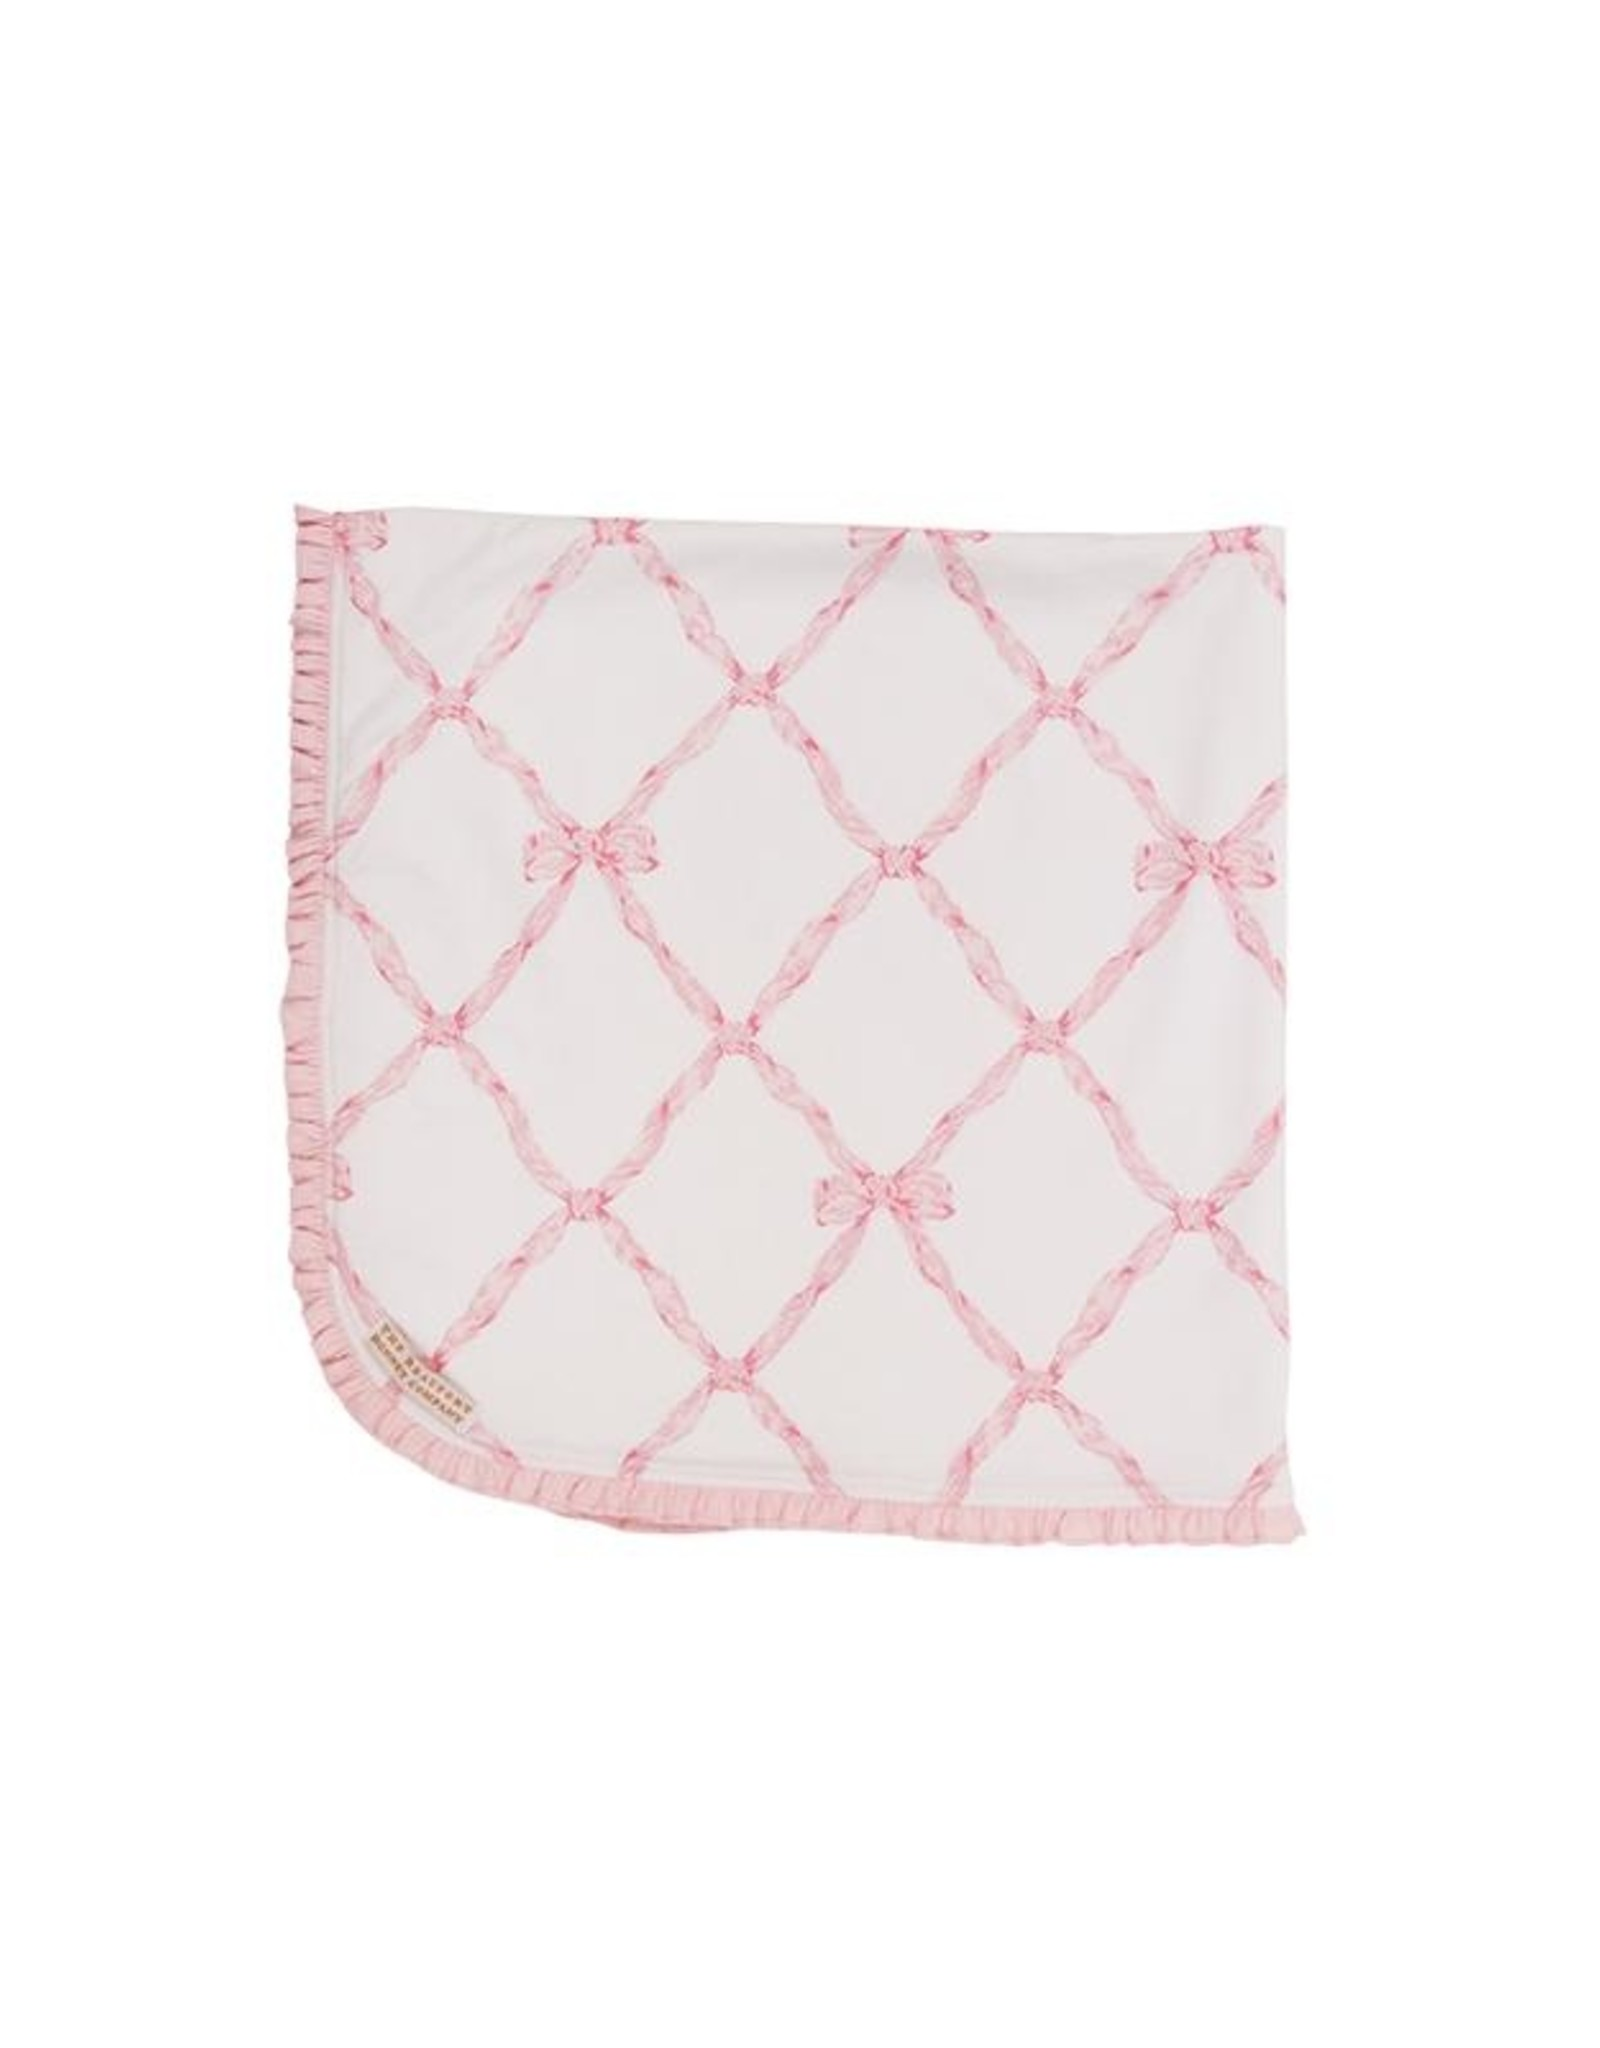 The Beaufort Bonnet Company Baby Buggy Blanket Belle Meade Bow